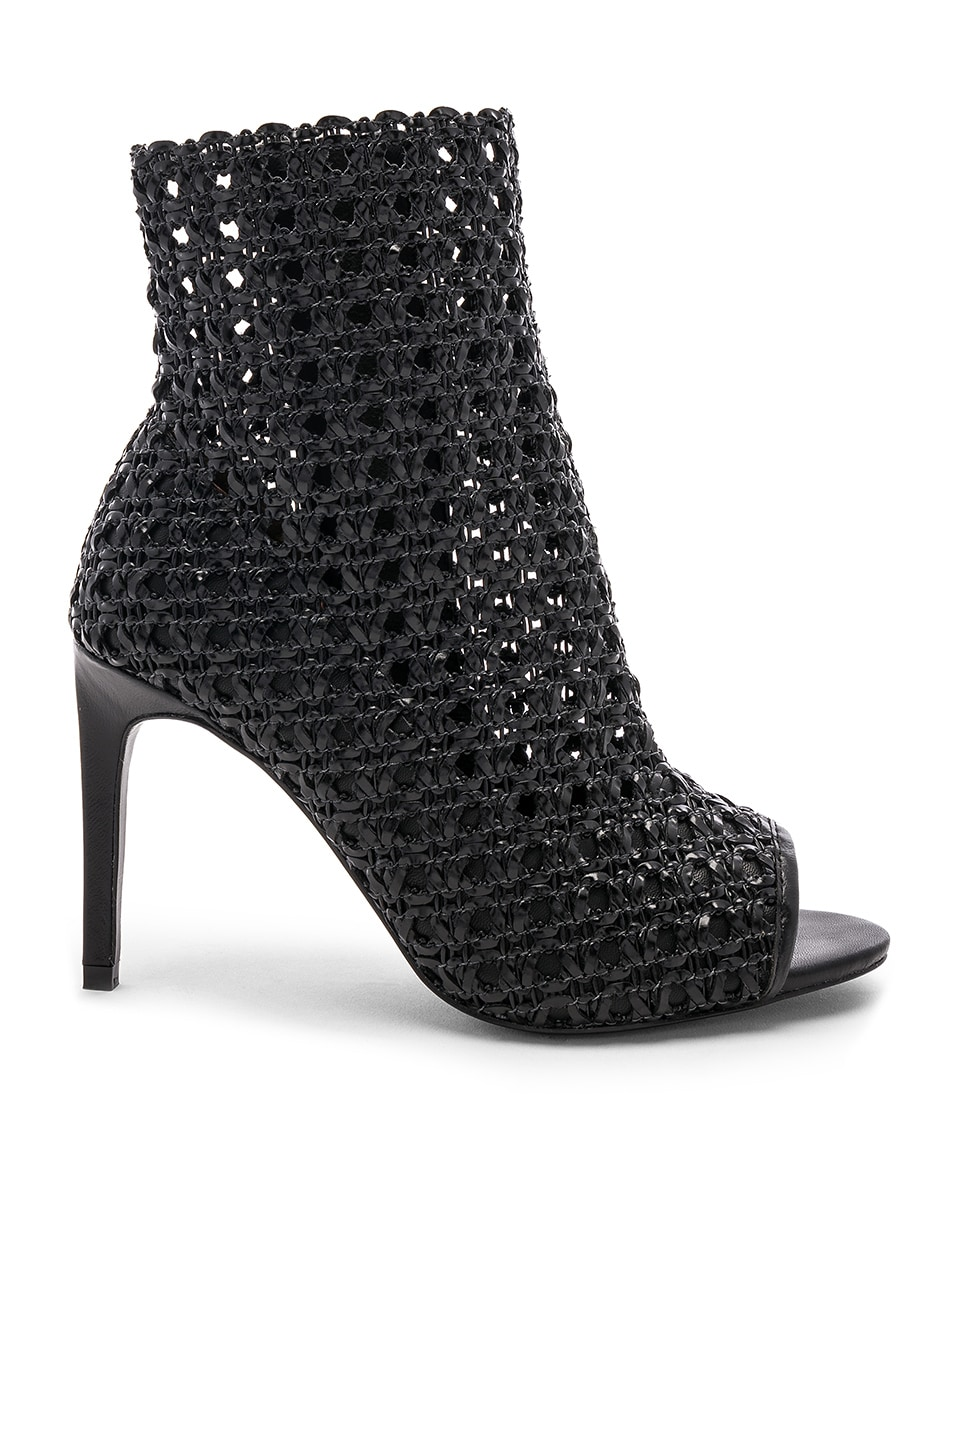 Chrissy Teigen x REVOLVE Rue Heel in Black